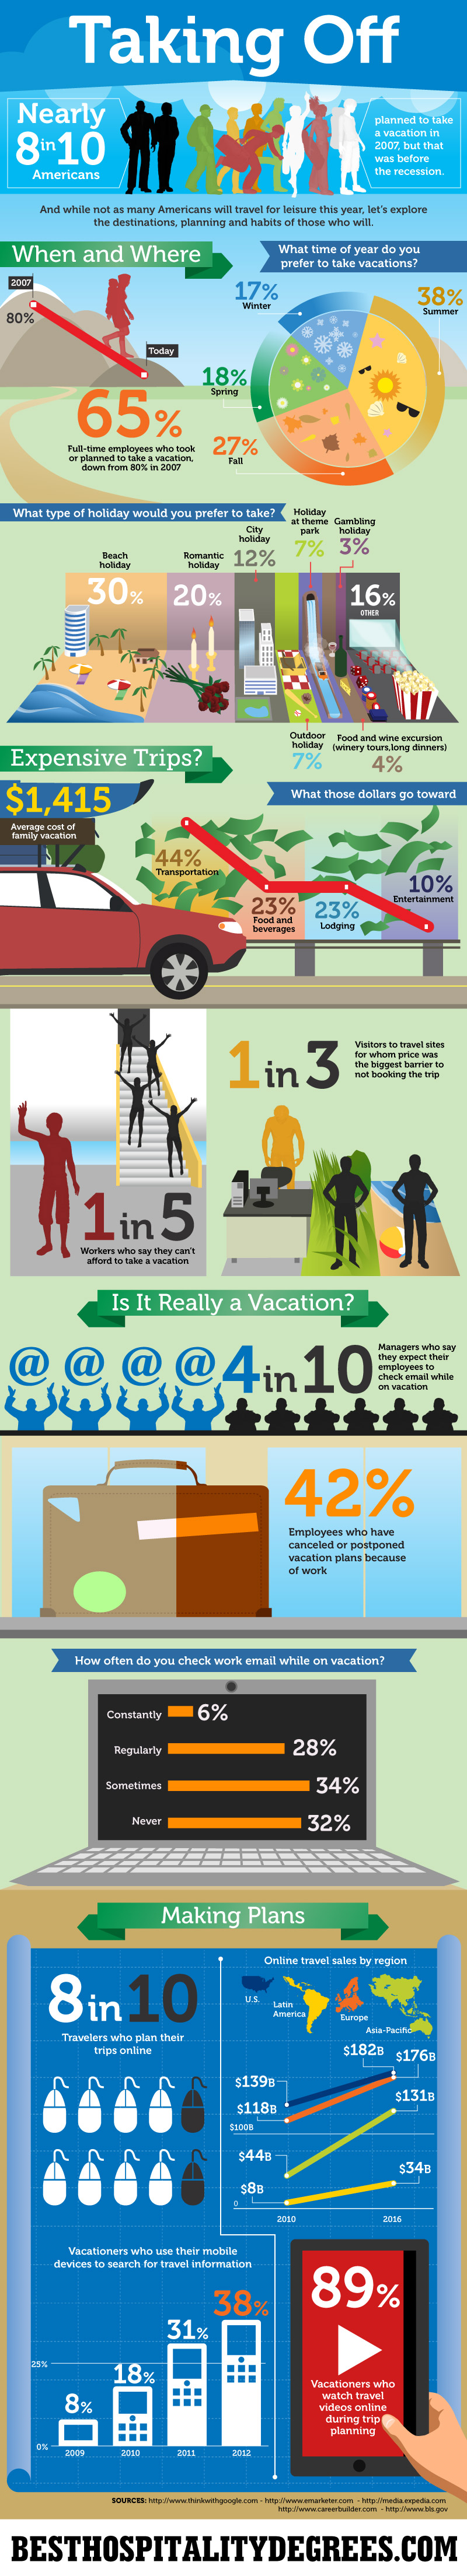 Taking Off: Travel Trends in 2013